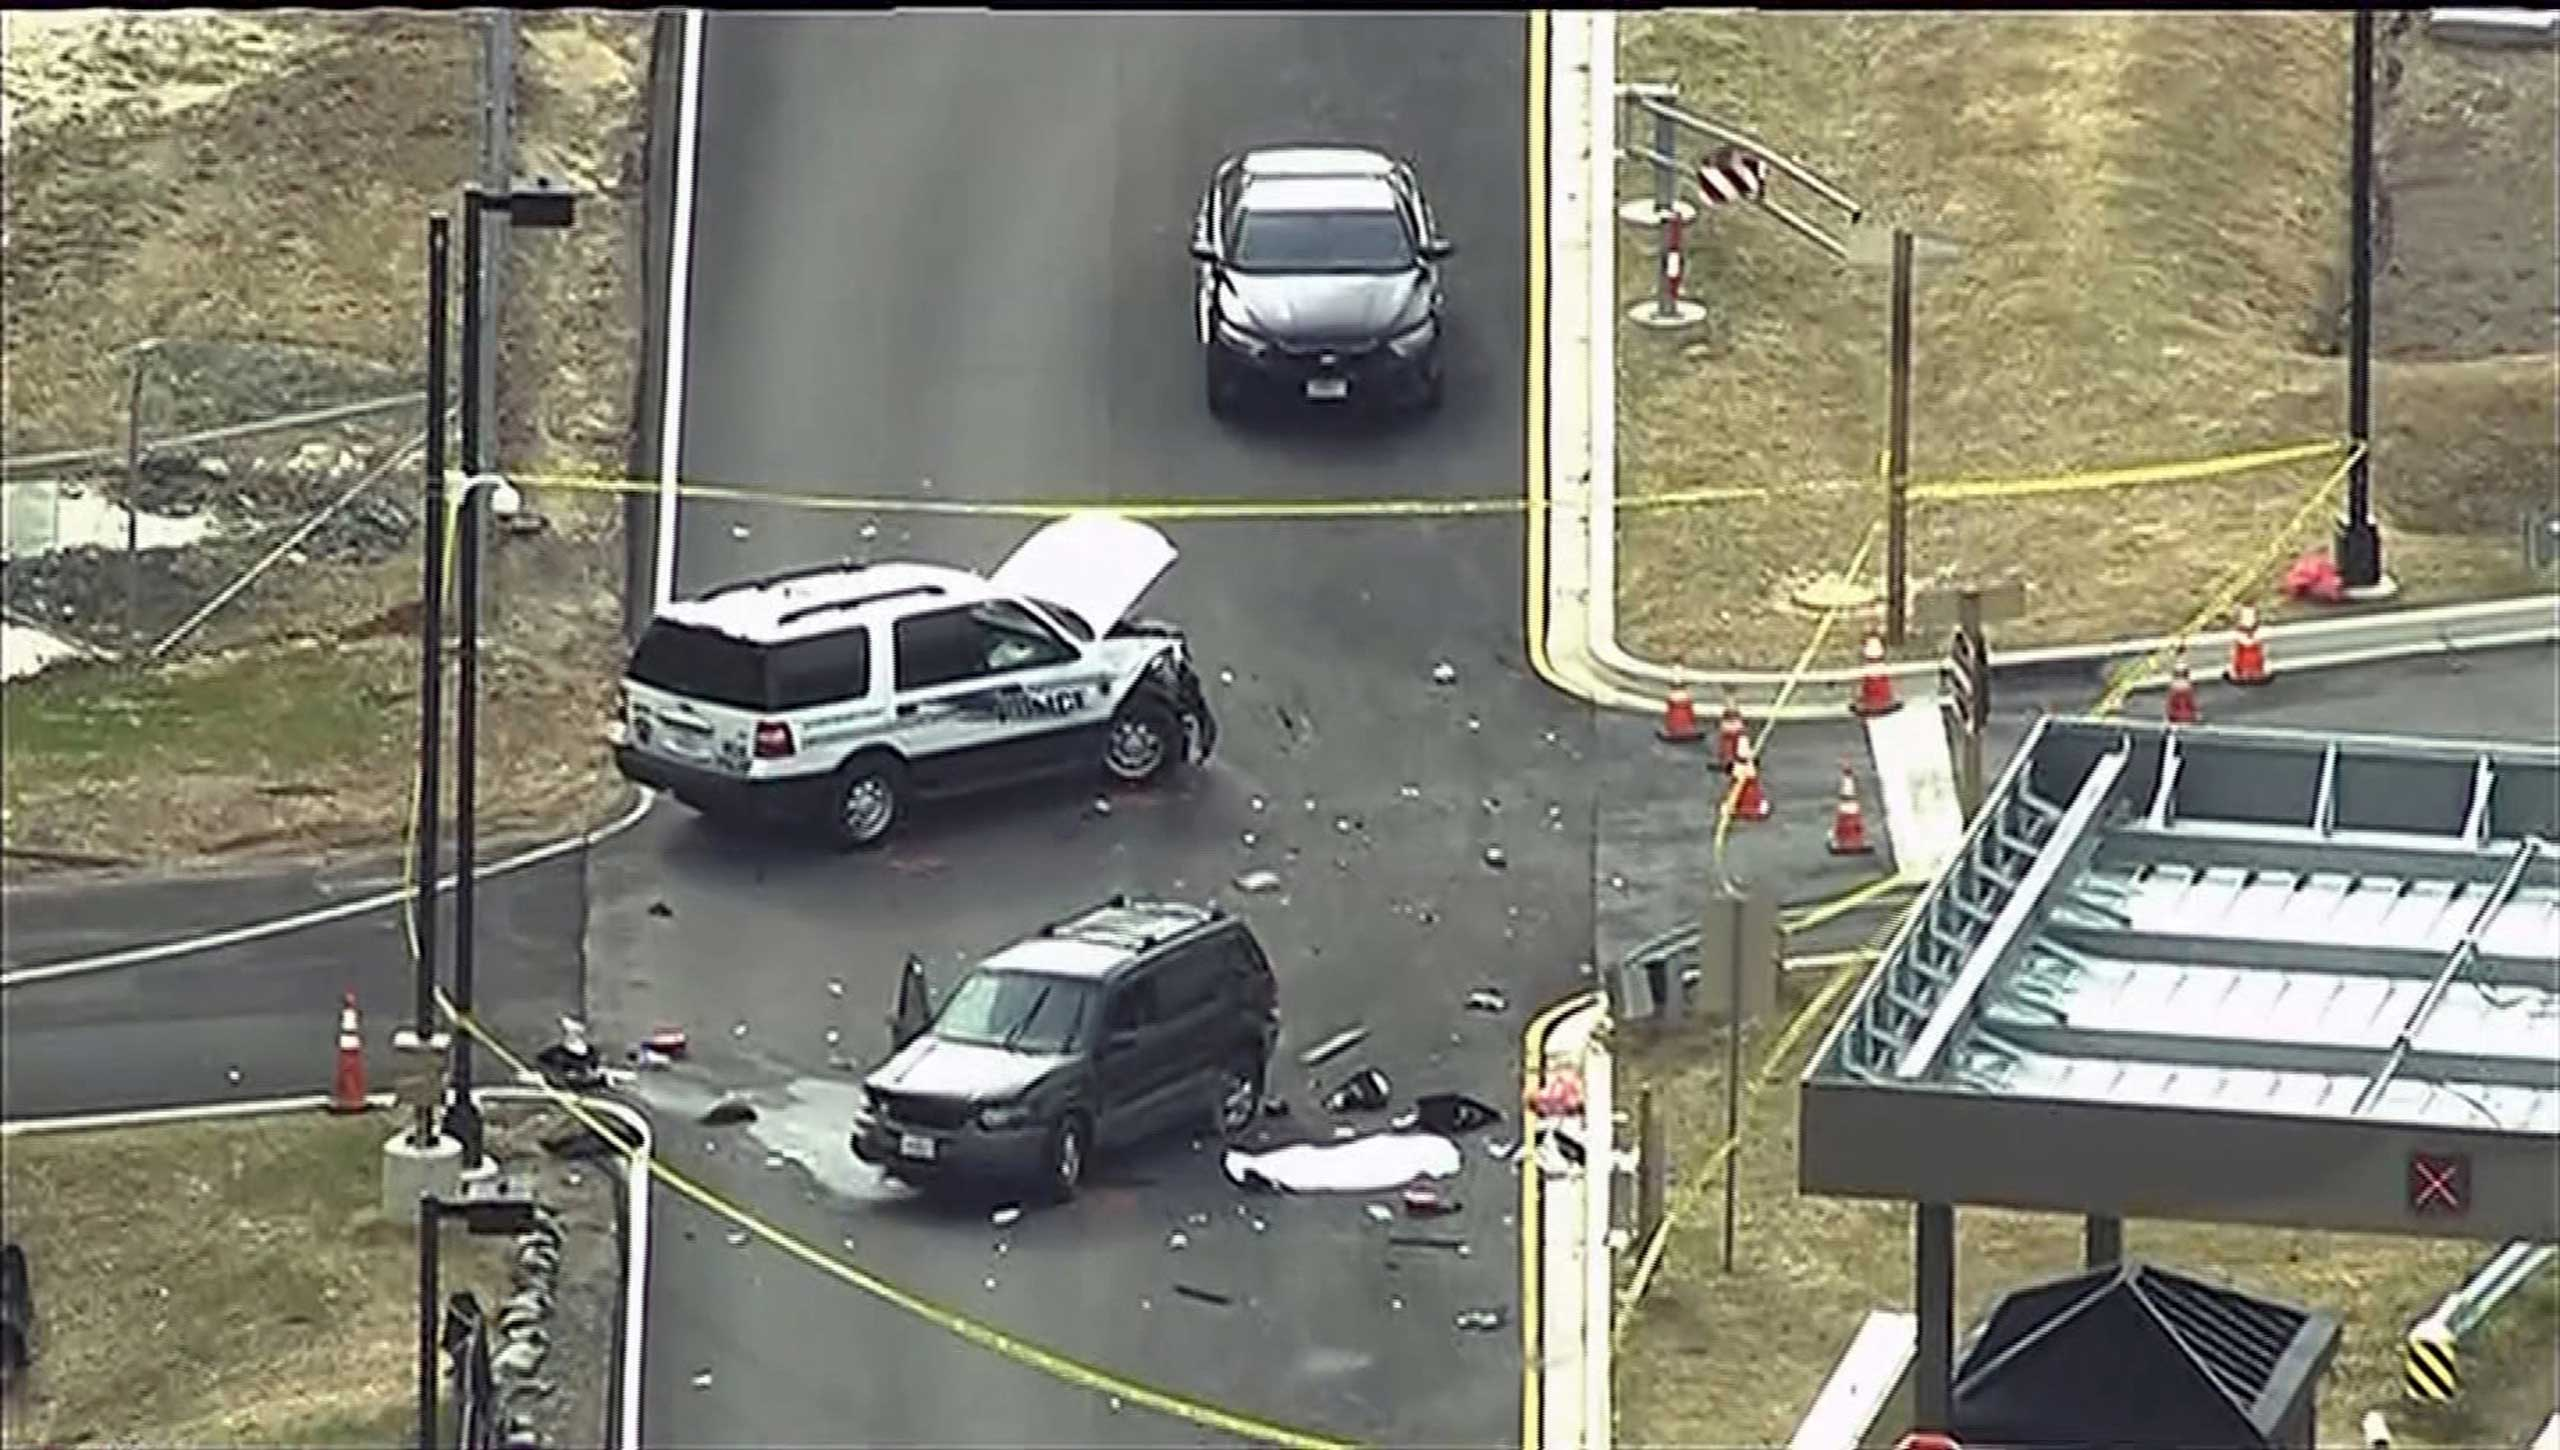 An aerial view of a shooting scene at the National Security Agency at Fort Meade in Maryland is pictured in this still image take from video, March 30, 2015.